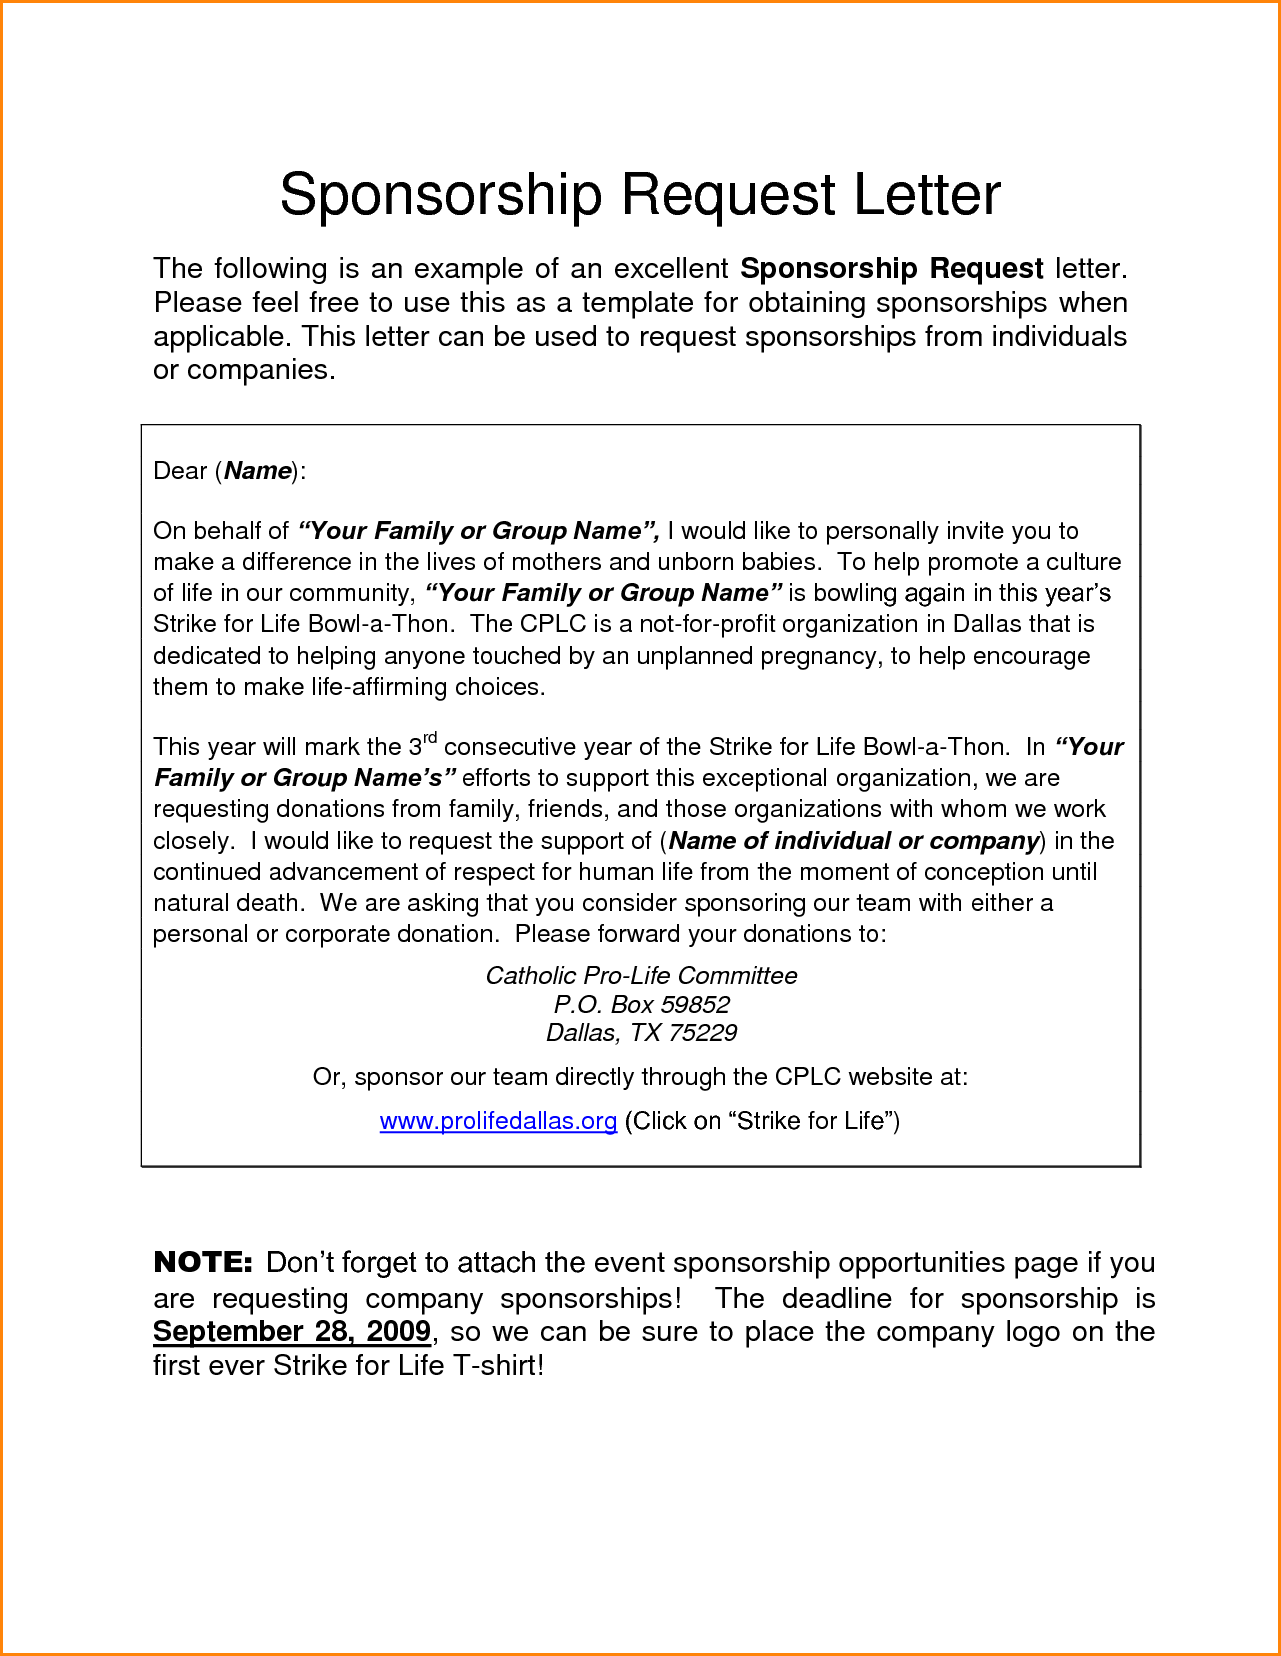 Sample sponsorship request letter pasoevolist sample sponsorship request letter altavistaventures Image collections